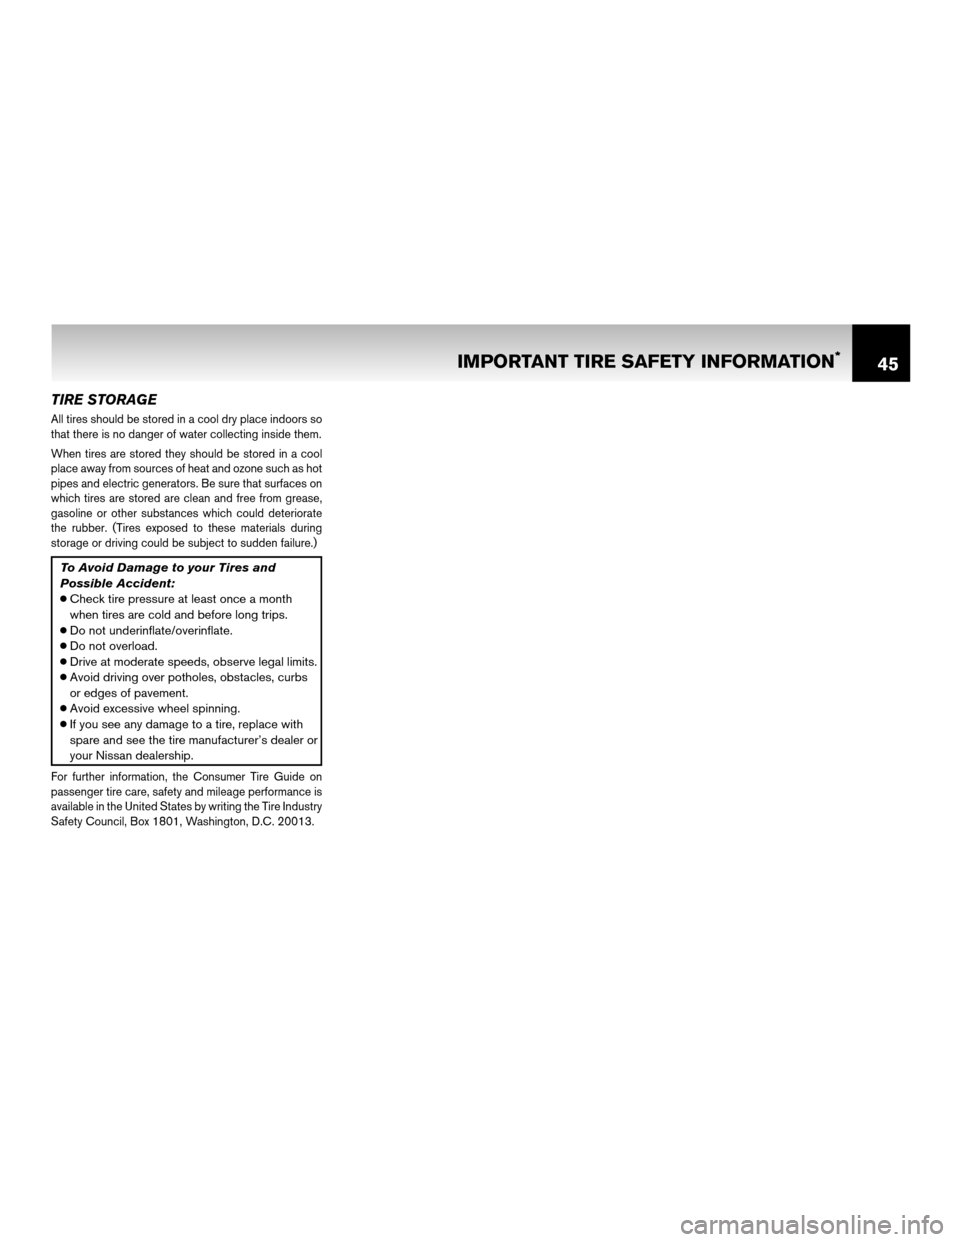 NISSAN ROGUE 2011 1.G Warranty Booklet, Page 48